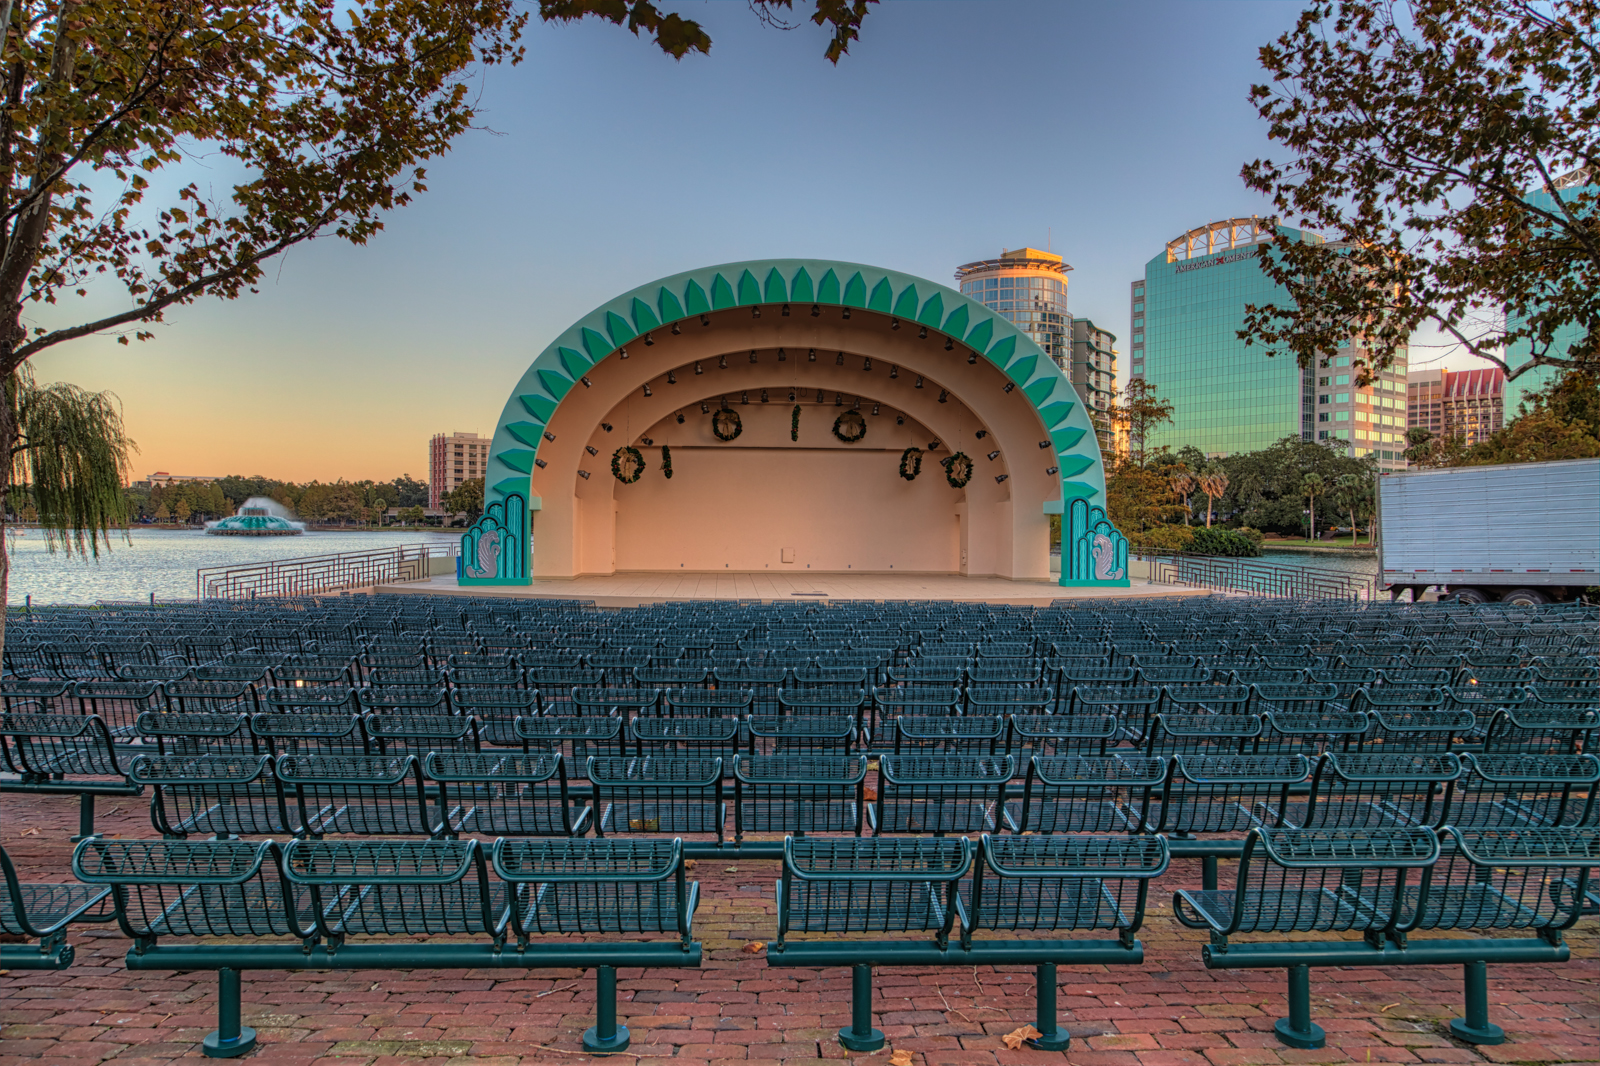 Lake Eola Bandshell and Fountain